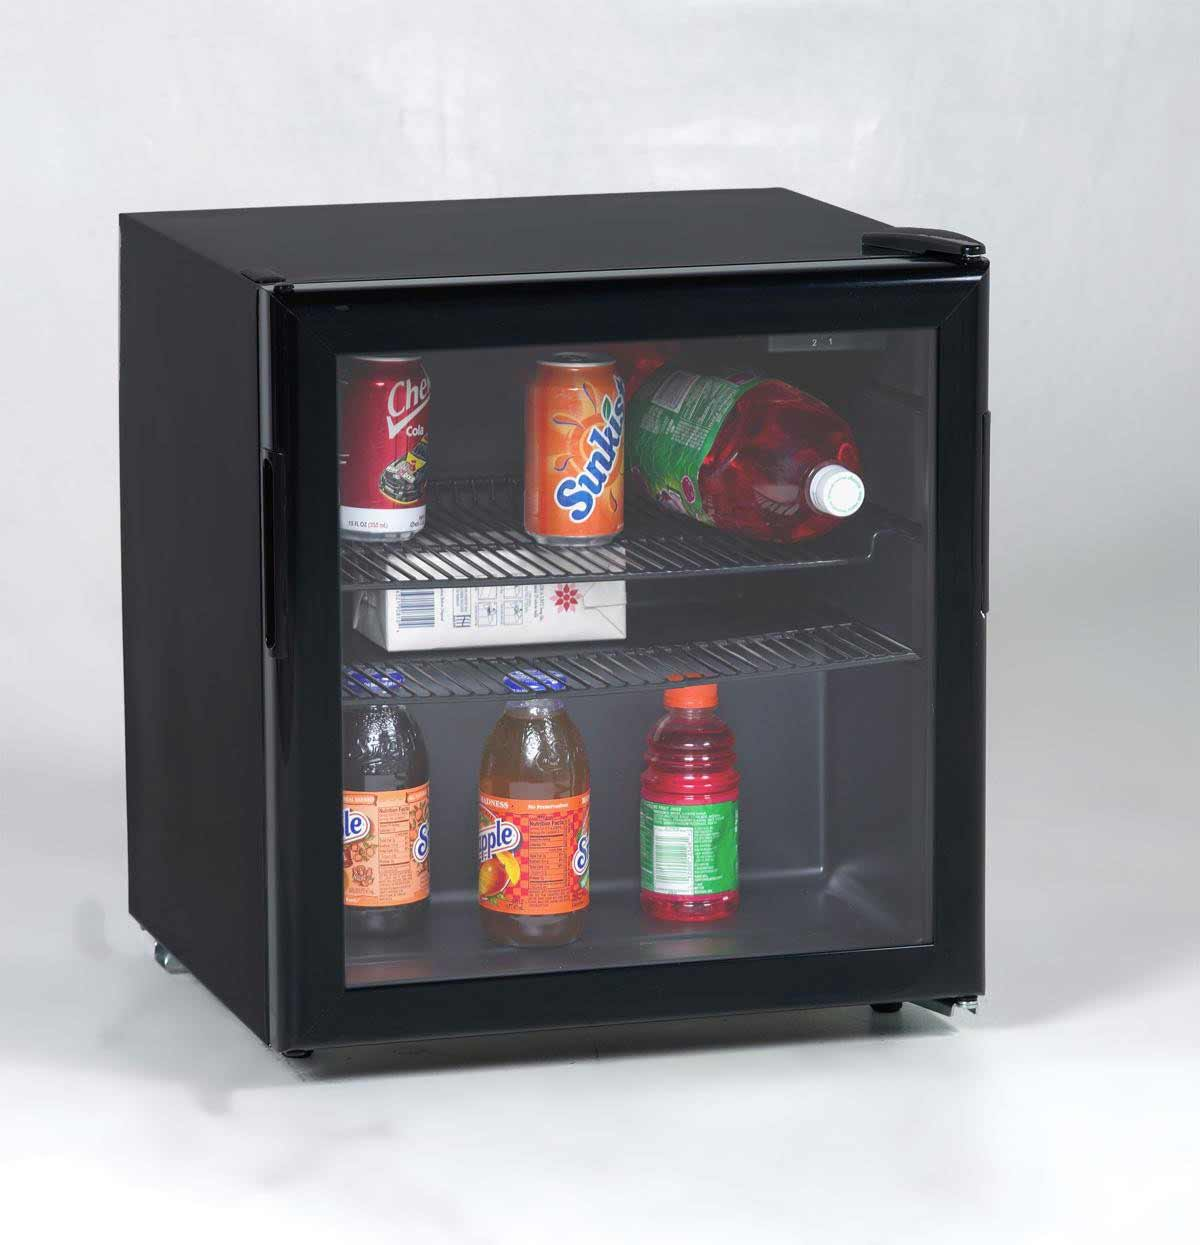 Beverage Cooler Images Reverse Search